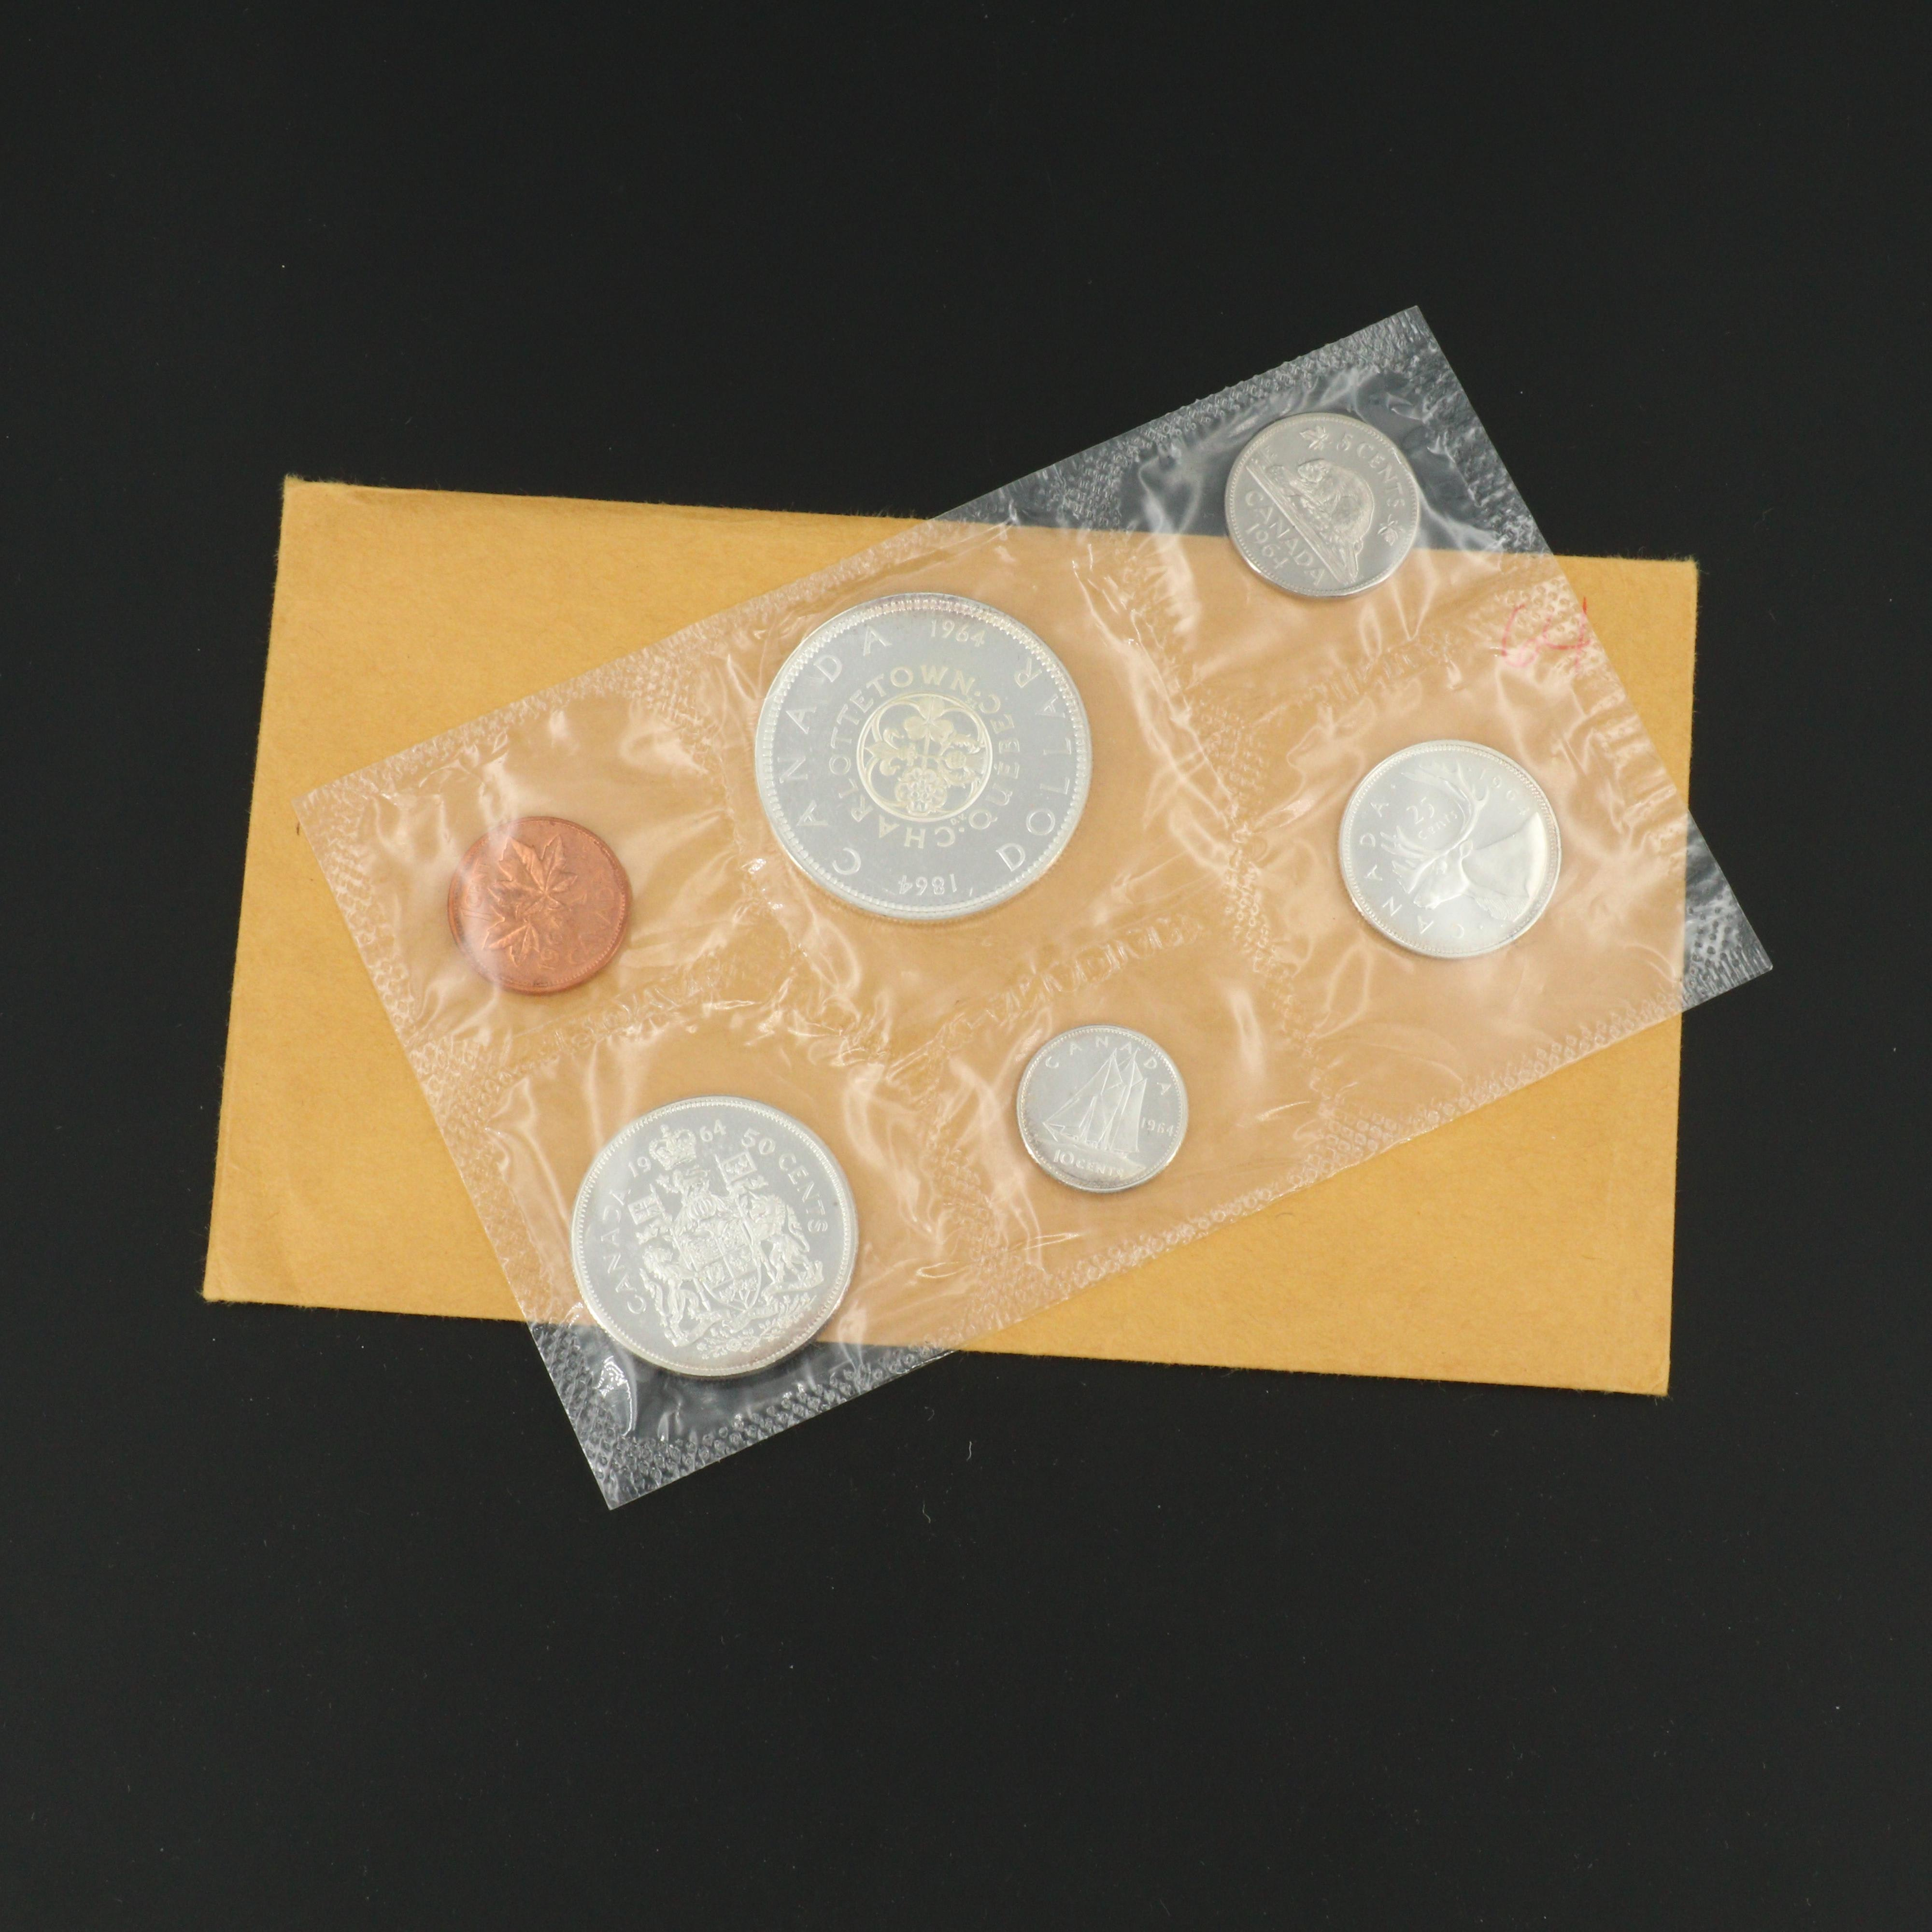 1964 Canadian Uncirculated Silver Coin Set